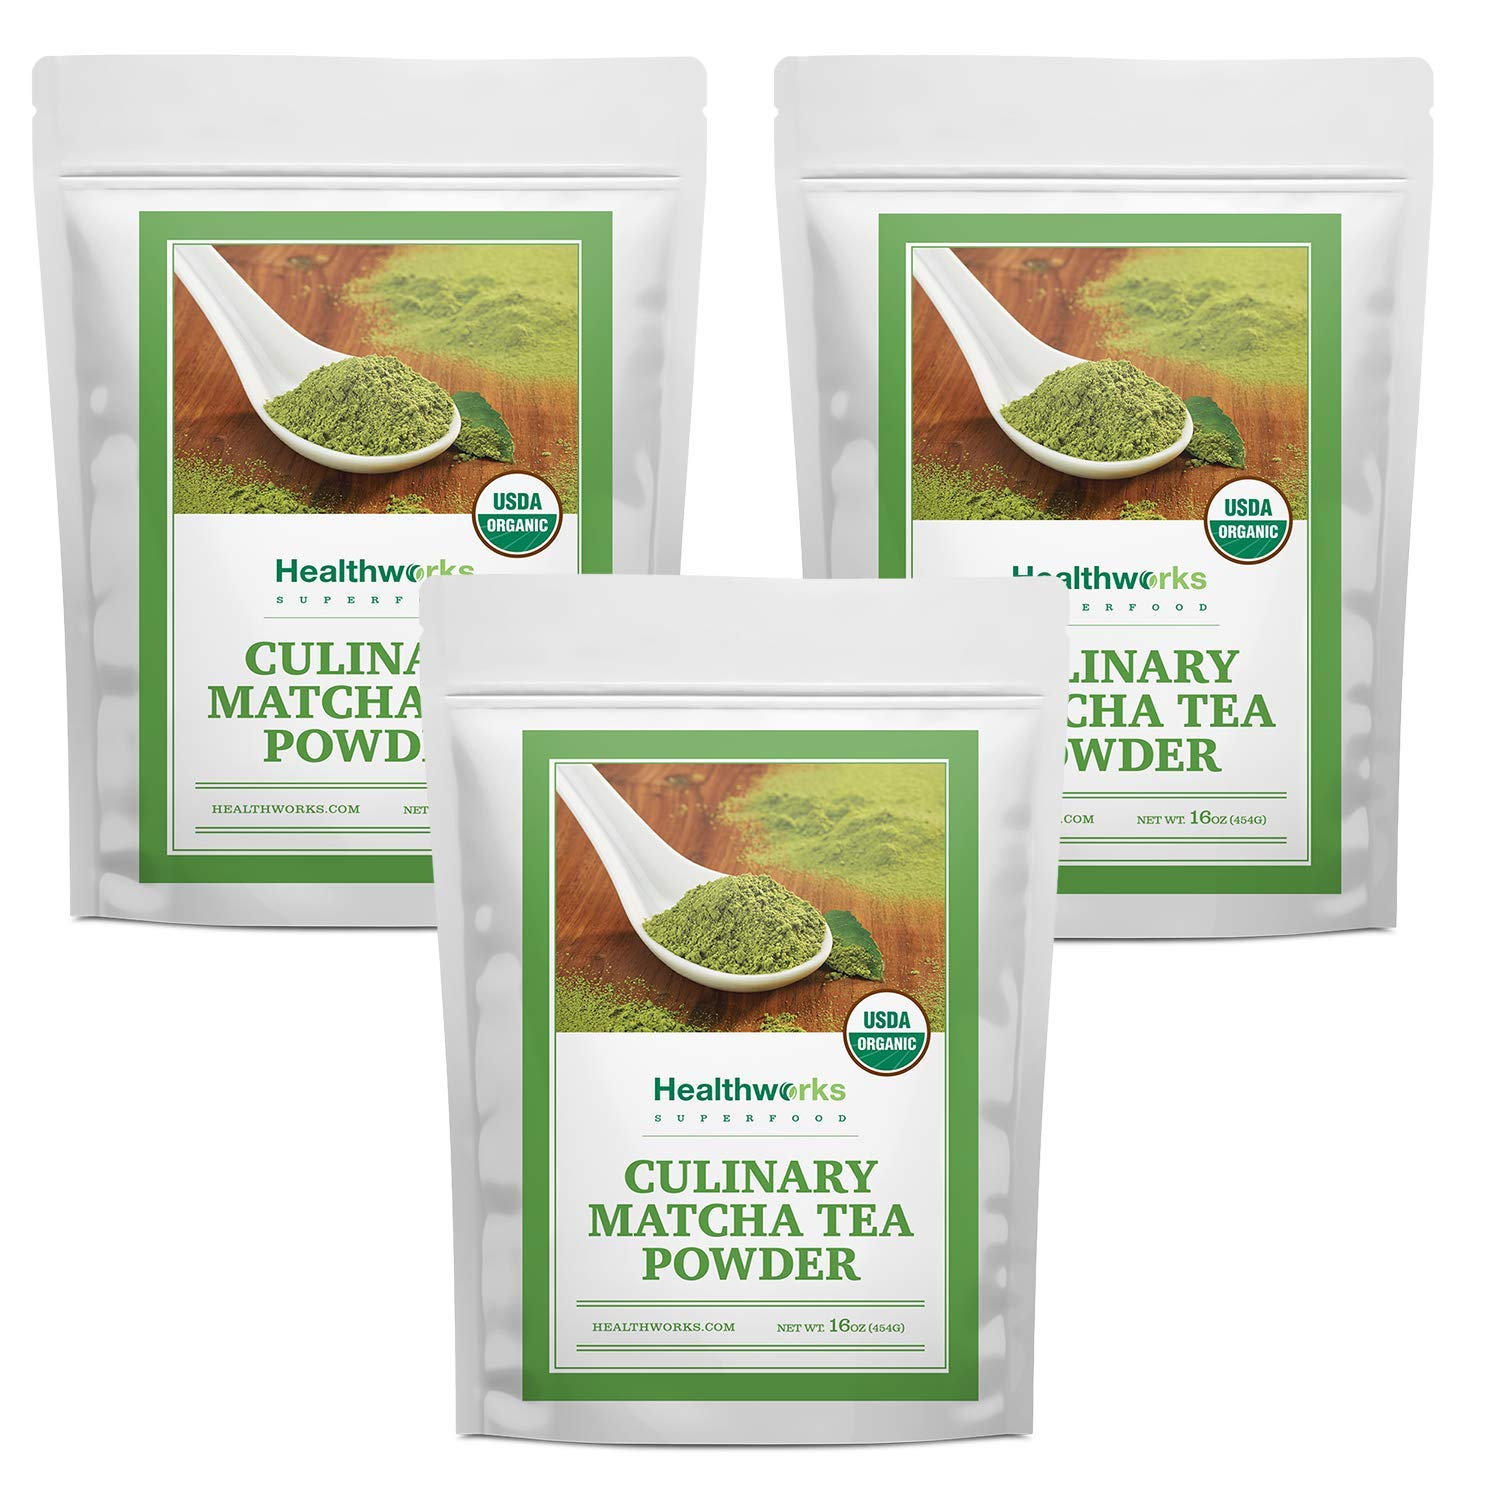 Healthworks Matcha Green Tea Powder Unsweetened (48 Ounces / 1 Pound) (3 x 1 Pound Bags) | Pure Certified Organic Premium Culinary Grade Extract | Keto, Vegan & Non-GMO | Smoothies, Lattes & Ice Cream by Healthworks